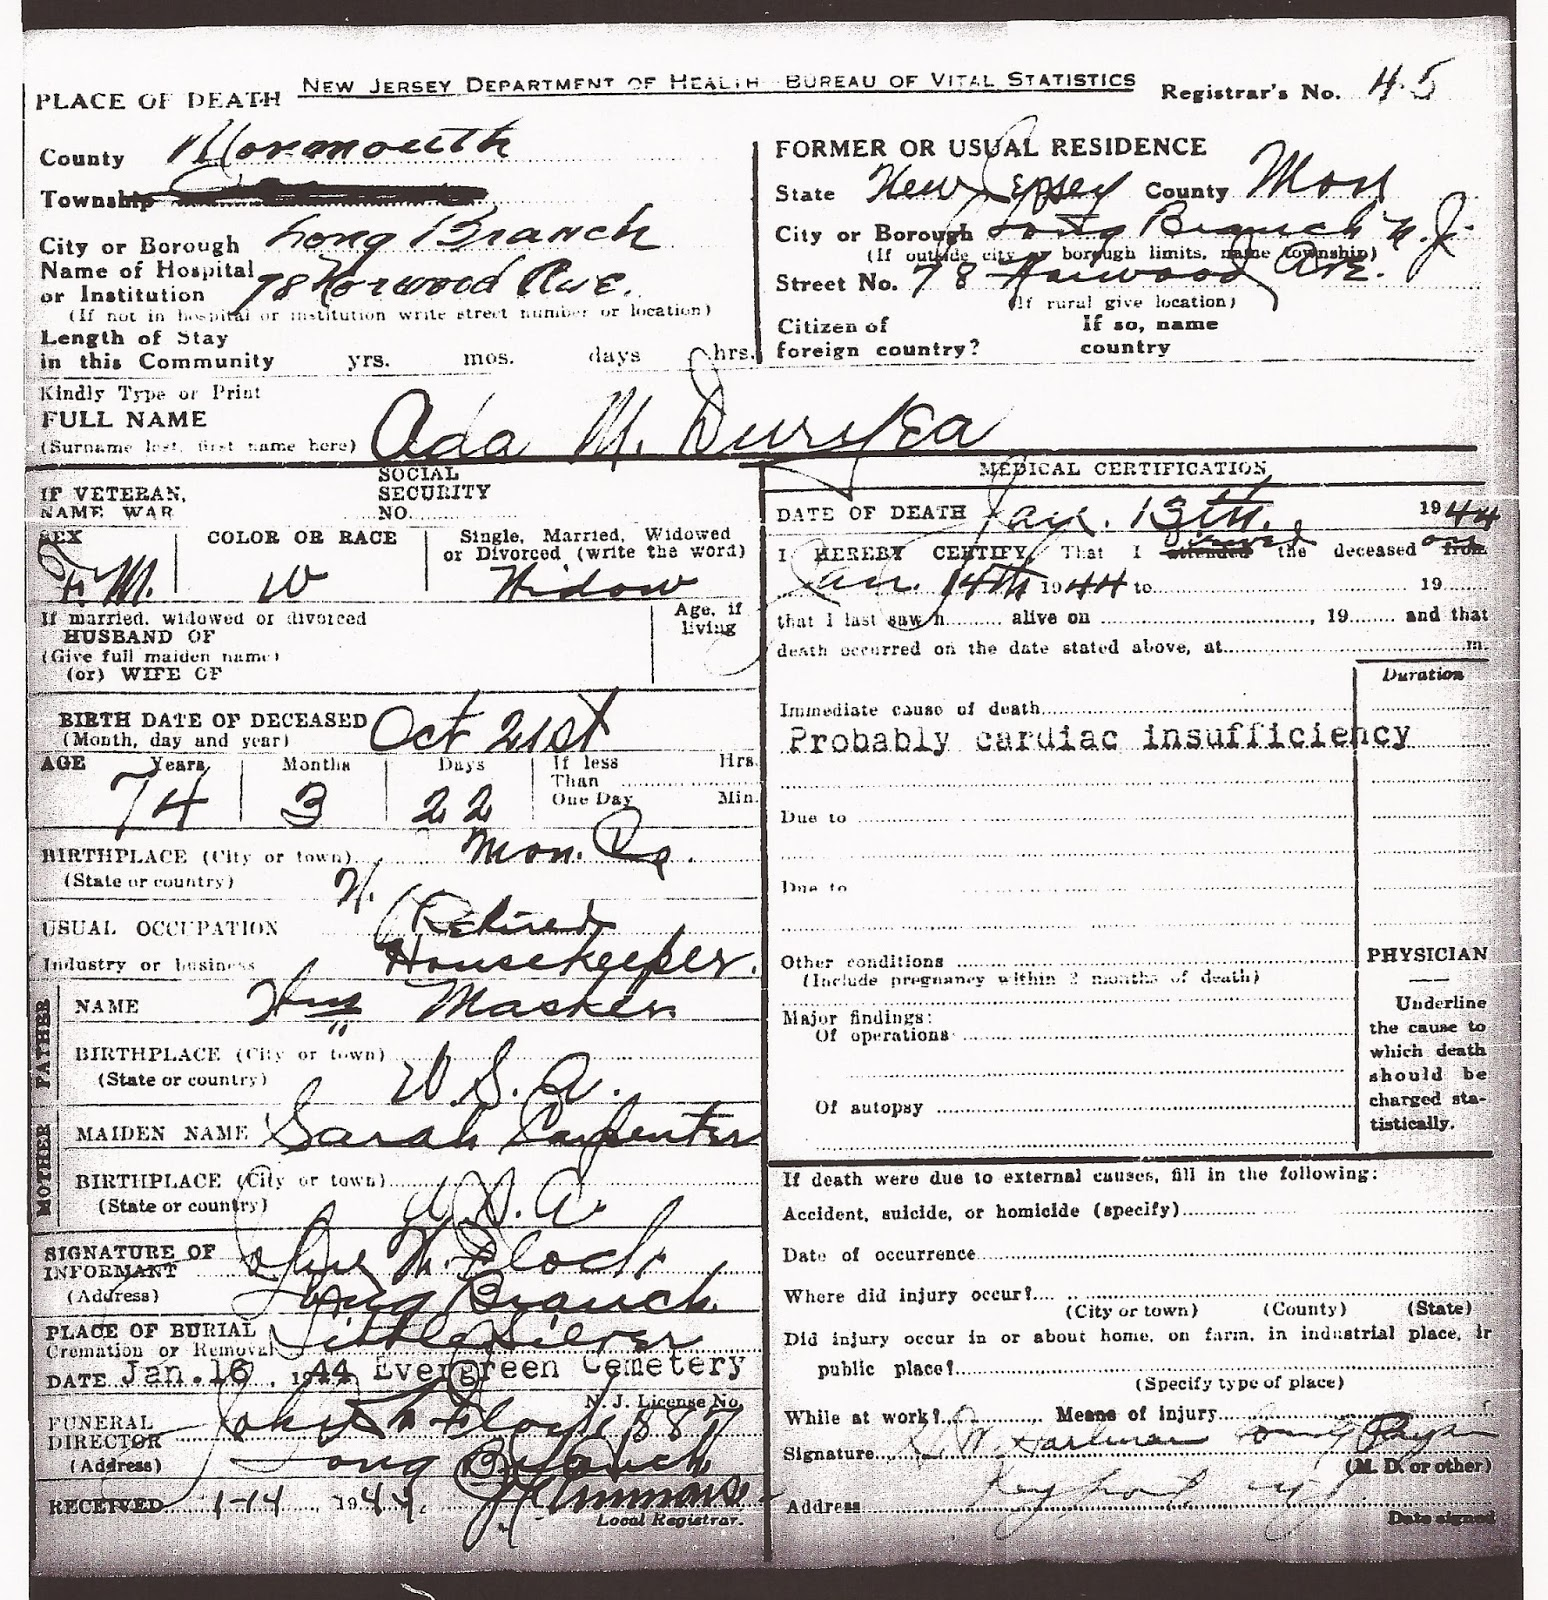 Family History Research By Jody Lutter Duryea New Jersey